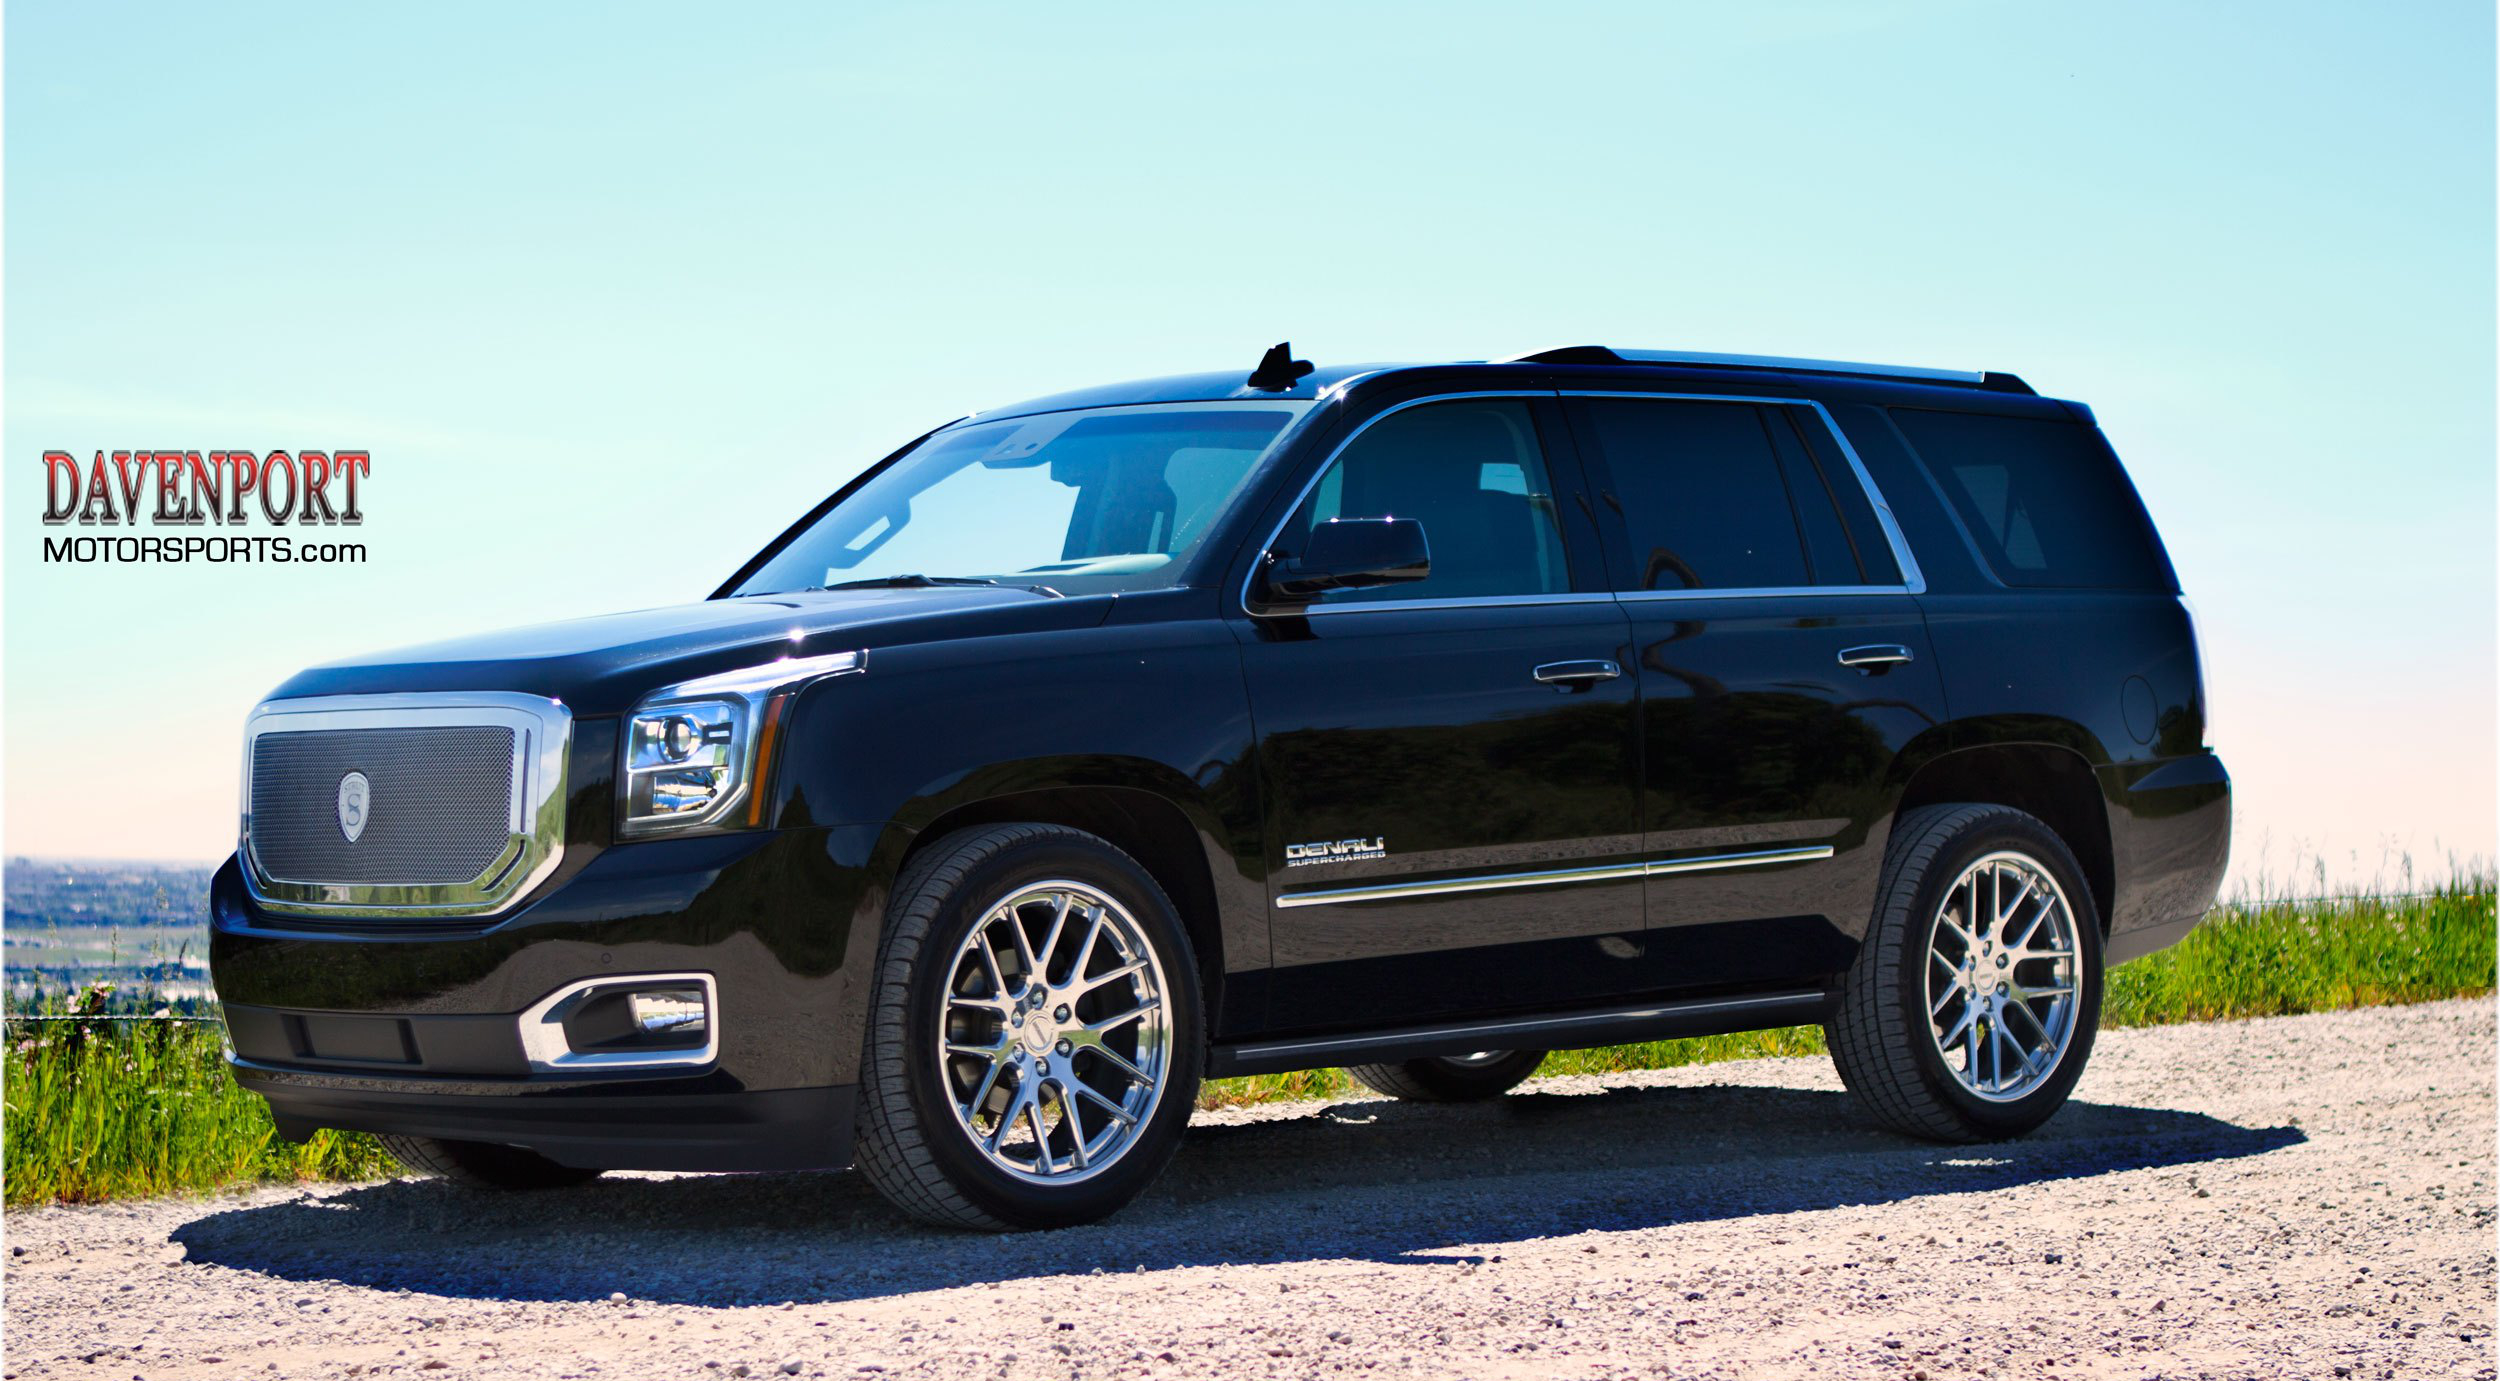 2014 Gmc Chevrolet Trucks Suv S 650hp Supercharger Package